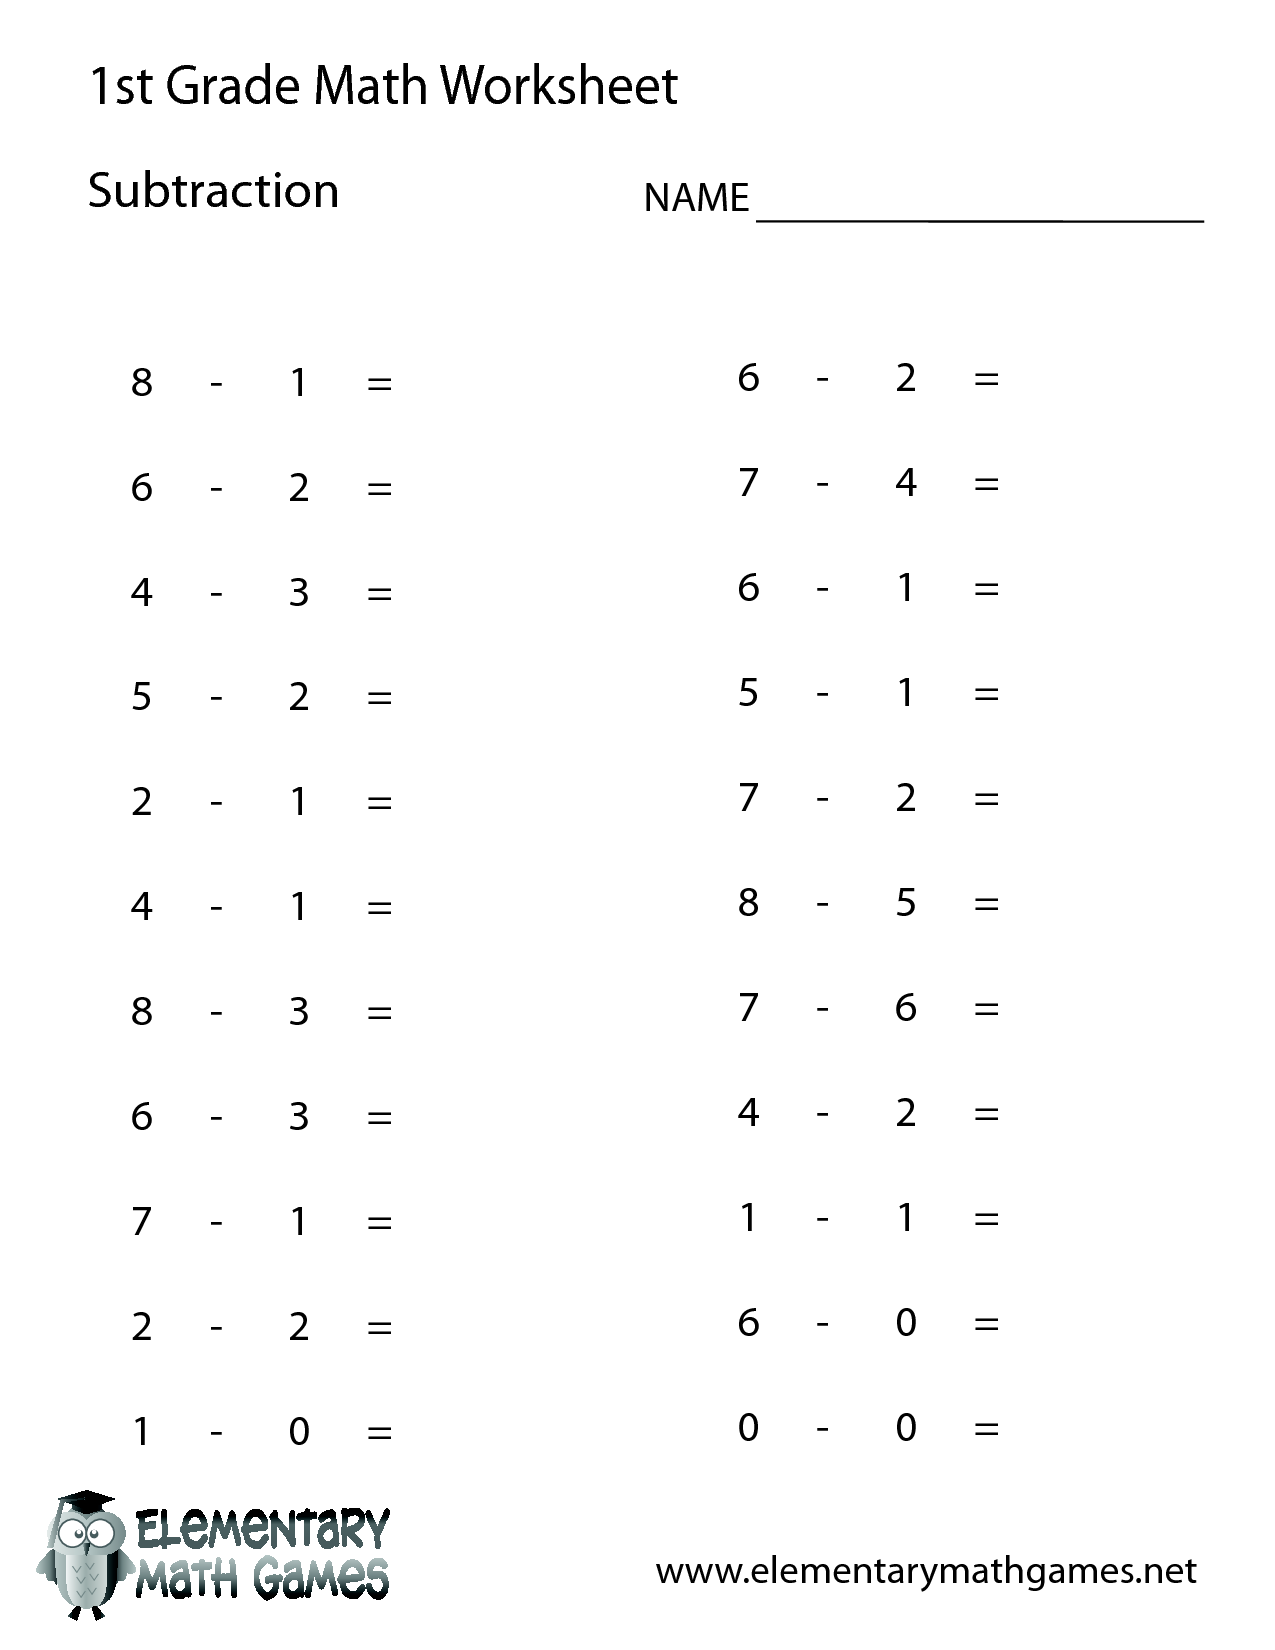 Worksheet Subtraction Worksheet For 1st Grade 1000 images about math on pinterest first grade worksheets and 1st worksheets